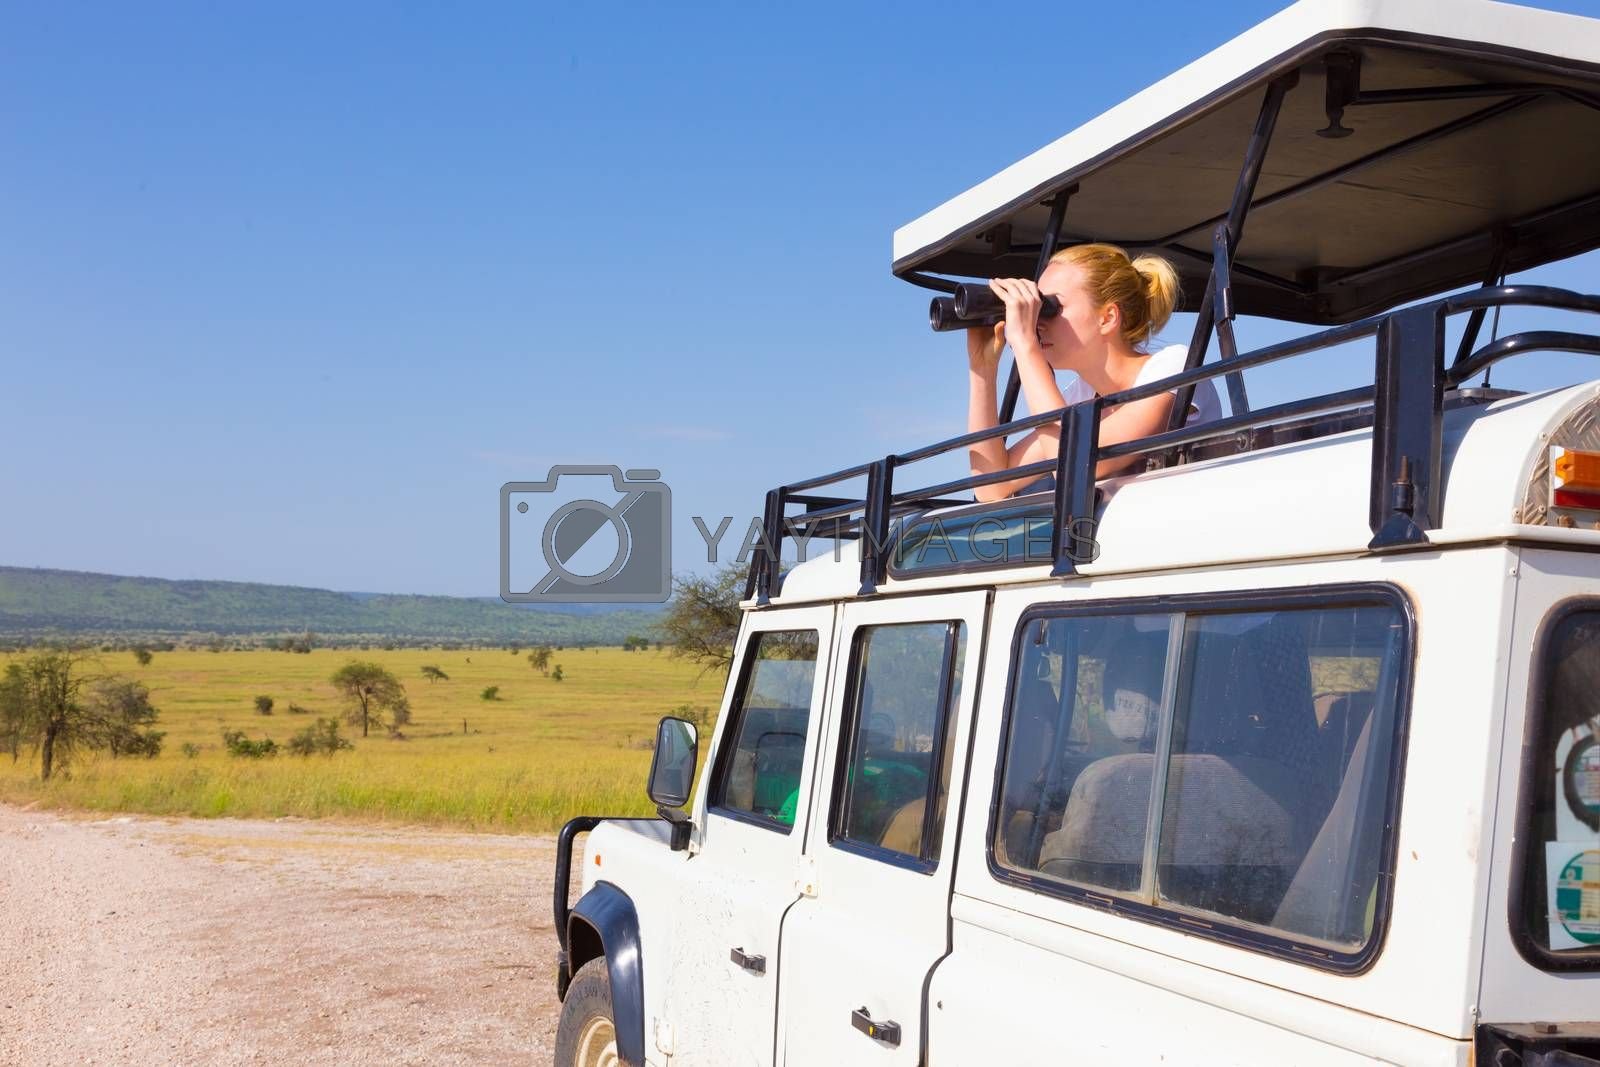 Young blond lady on safari standing in open roof jeep observing wild animals through binoculars.